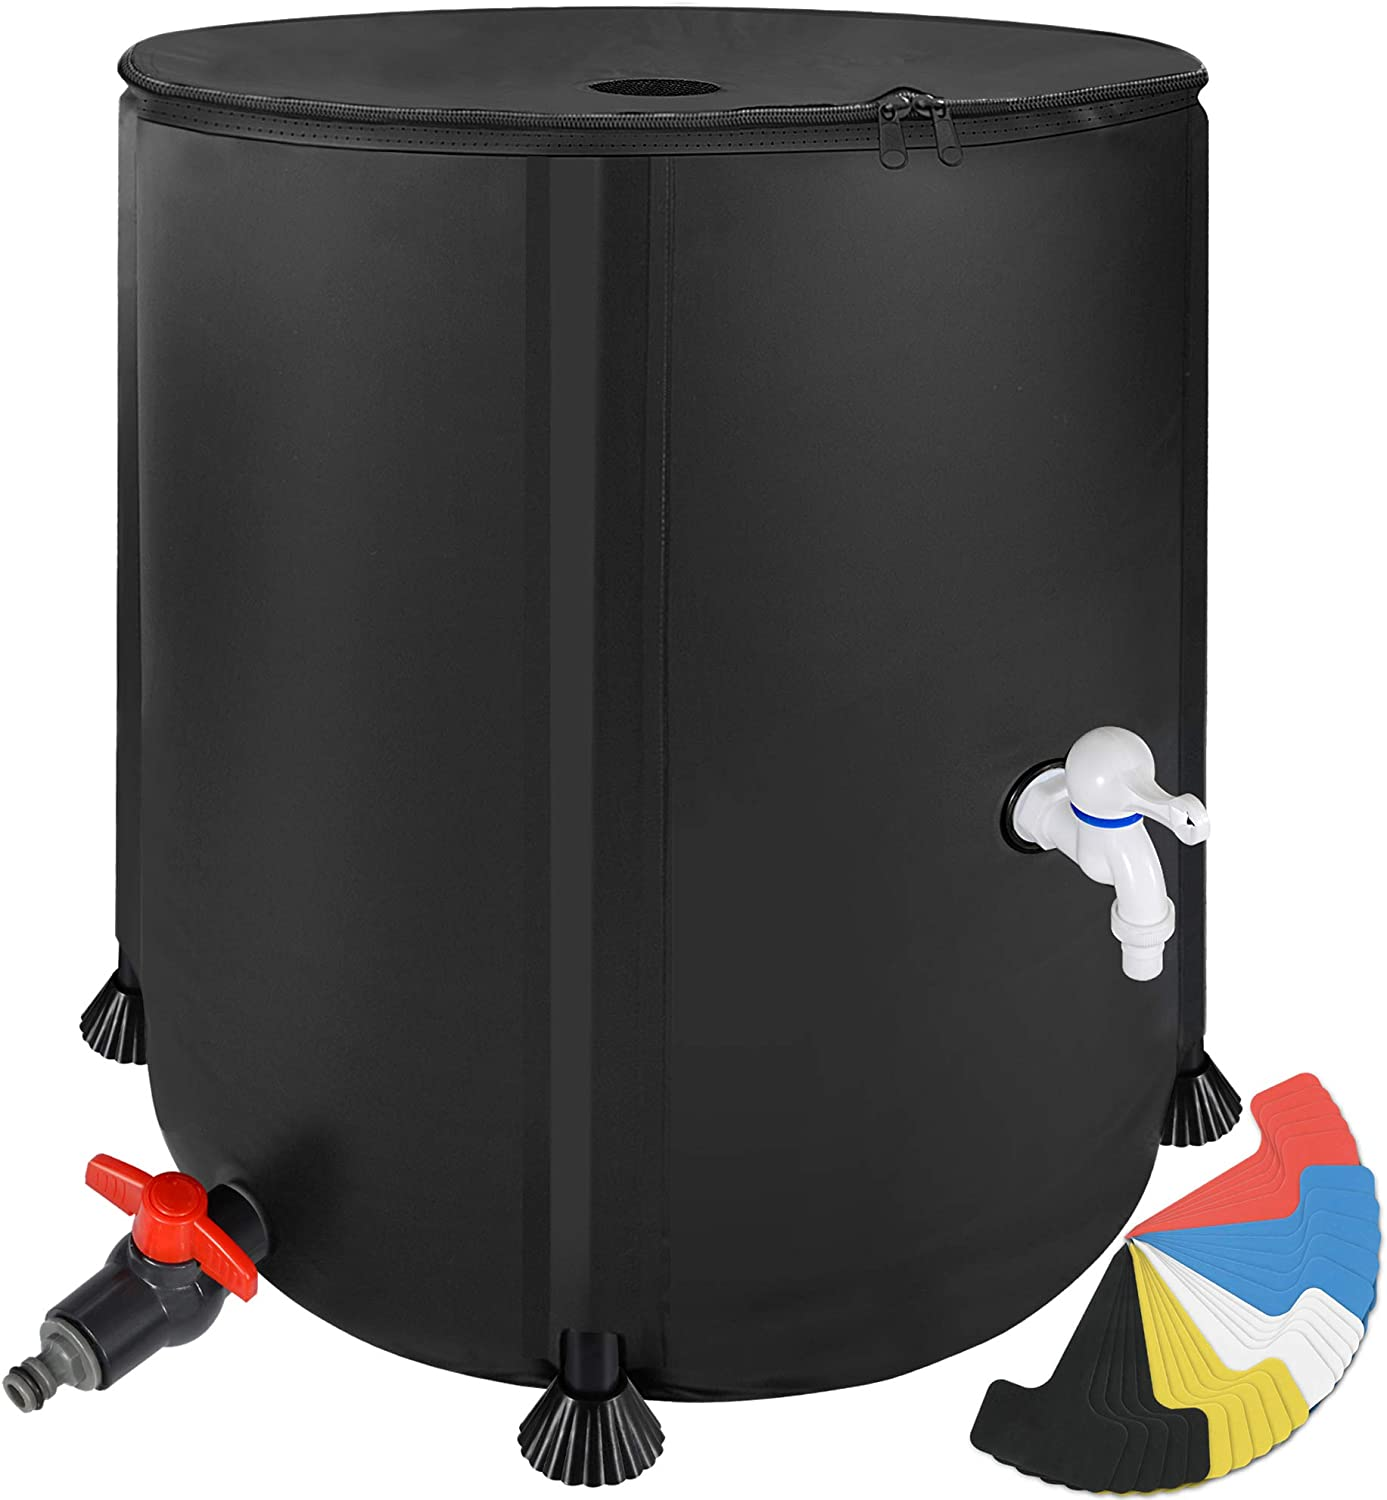 53 Gallon Portable Rain Barrel Water Tank - Collapsable Rainwater Collection System Storage Container - Water Collector Barrels Include Two Spigots and Overflow Kit - Comes with 25 Garden Labels